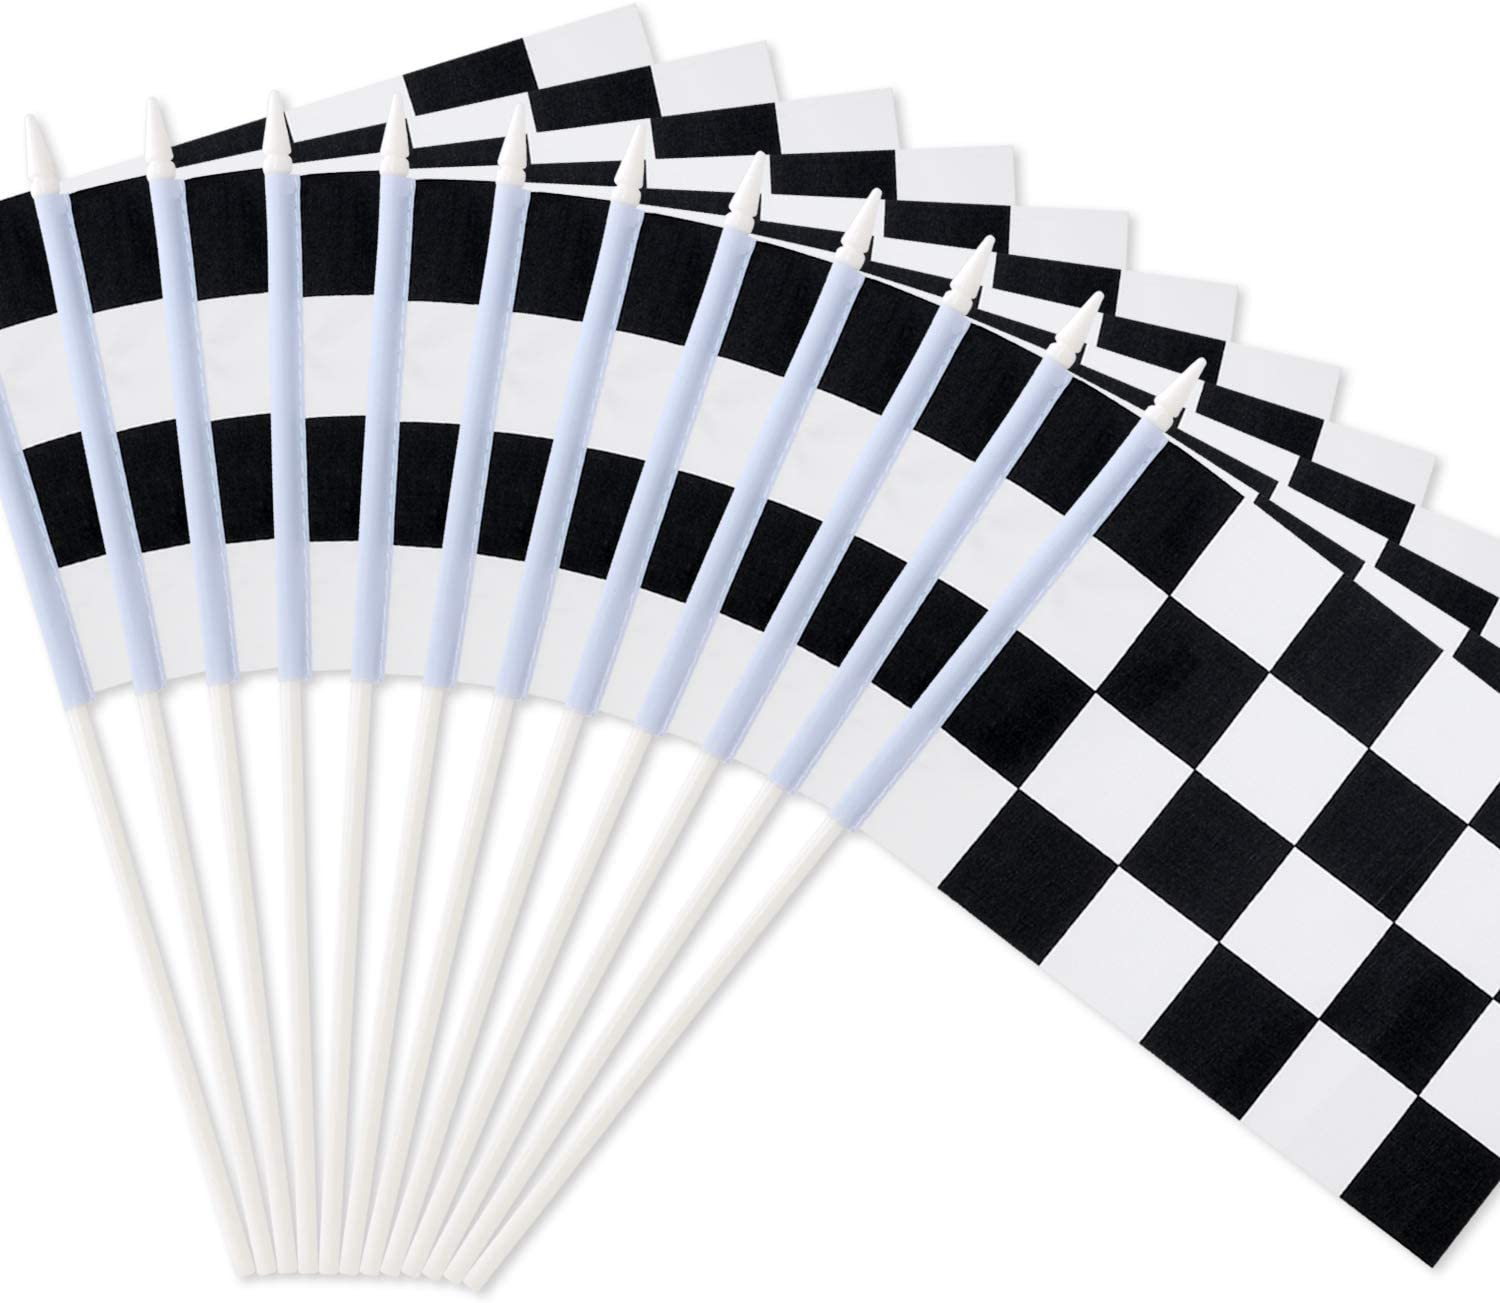 Waving Checkered FLAG Auto Racing VINYL DECAL STICKER 6inch 2 Pack Adhesive